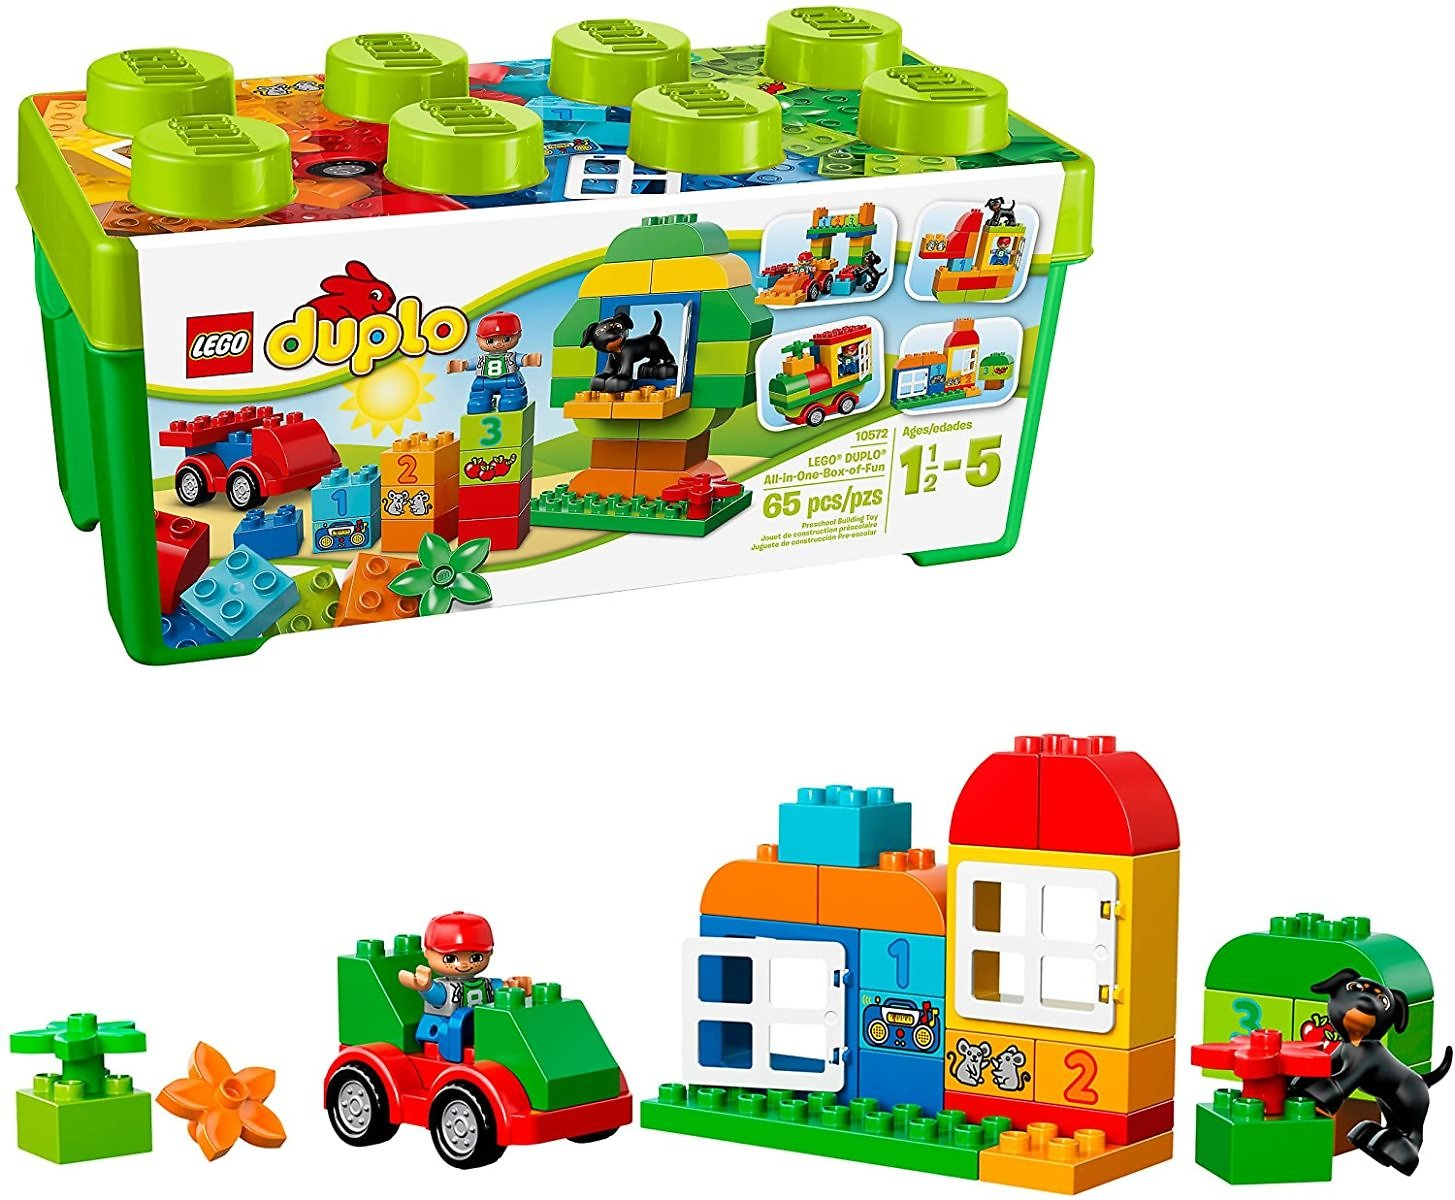 LEGO DUPLO All-in-One-Box-of-Fun Building Kit 10572 (65 Pieces)